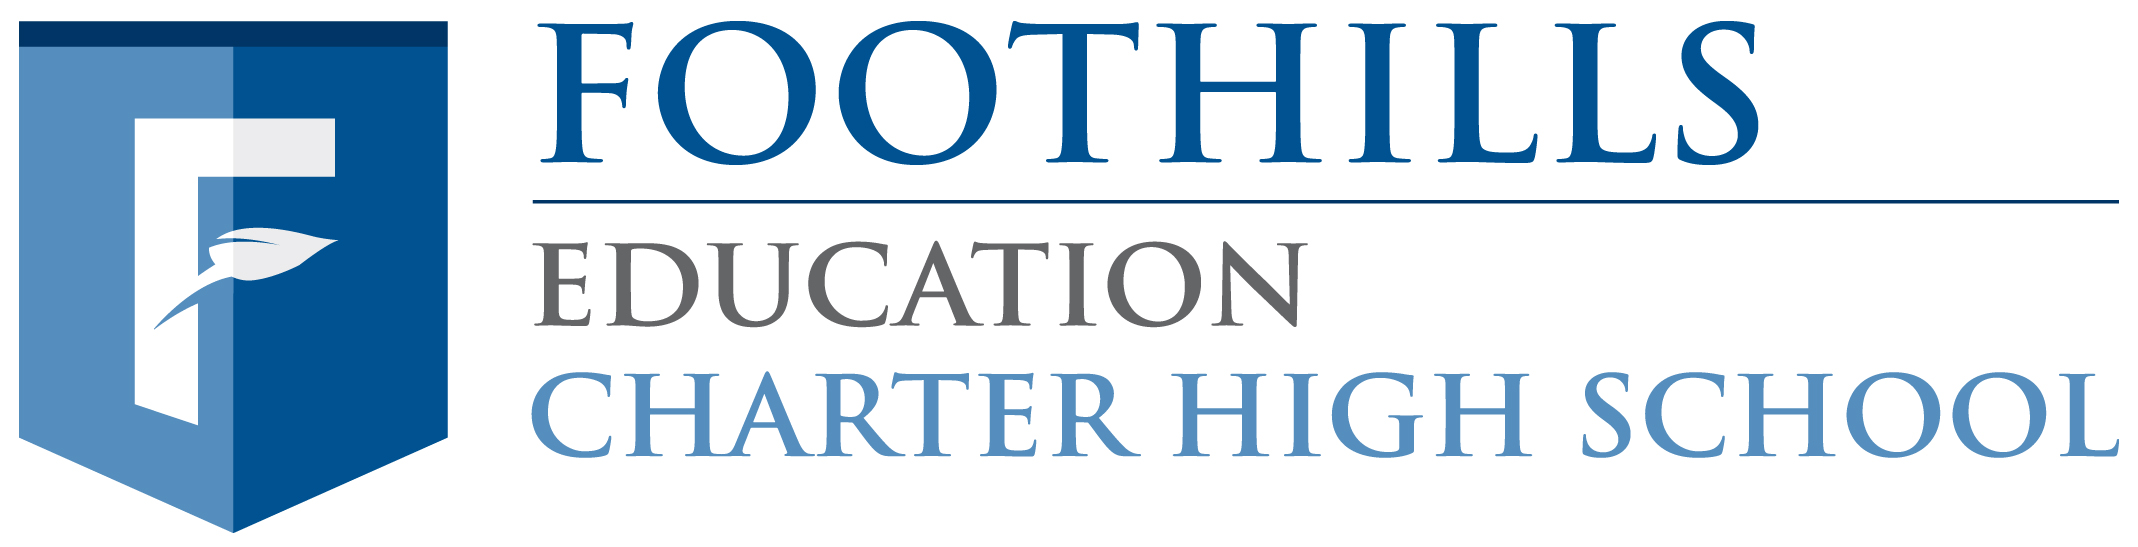 Foothills Education Charter HS